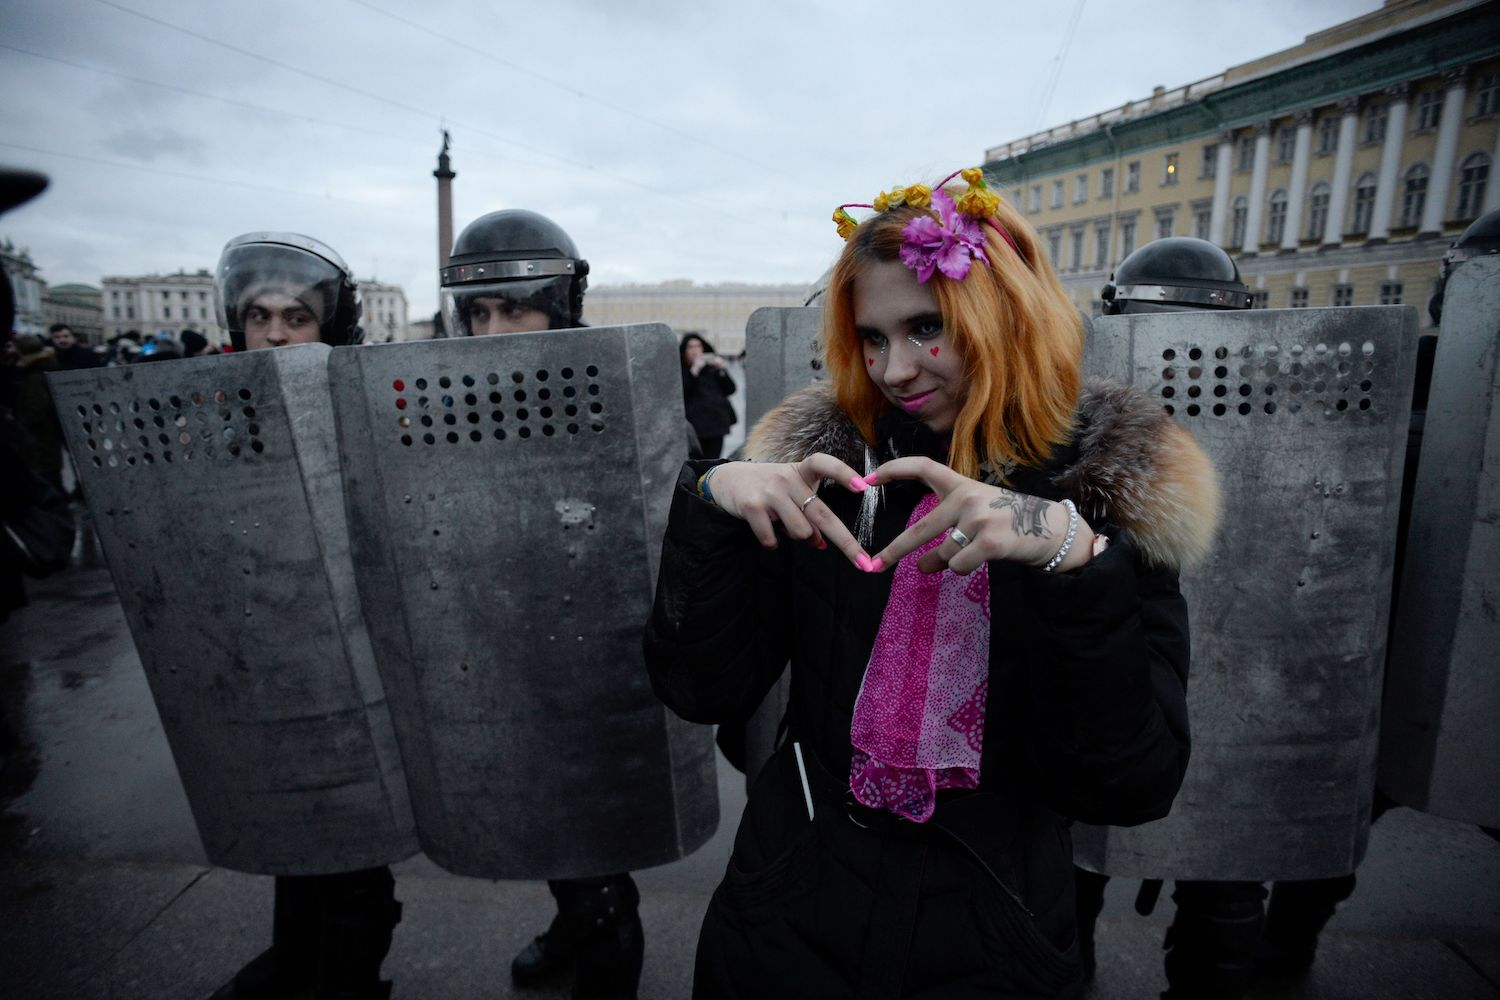 TOPSHOT - A woman gestures in front of riot police during a rally calling for a boycott of March 18 presidential elections, Saint Petersburg, January 28, 2018. / AFP PHOTO / OLGA MALTSEVA        (Photo credit should read OLGA MALTSEVA/AFP/Getty Images)